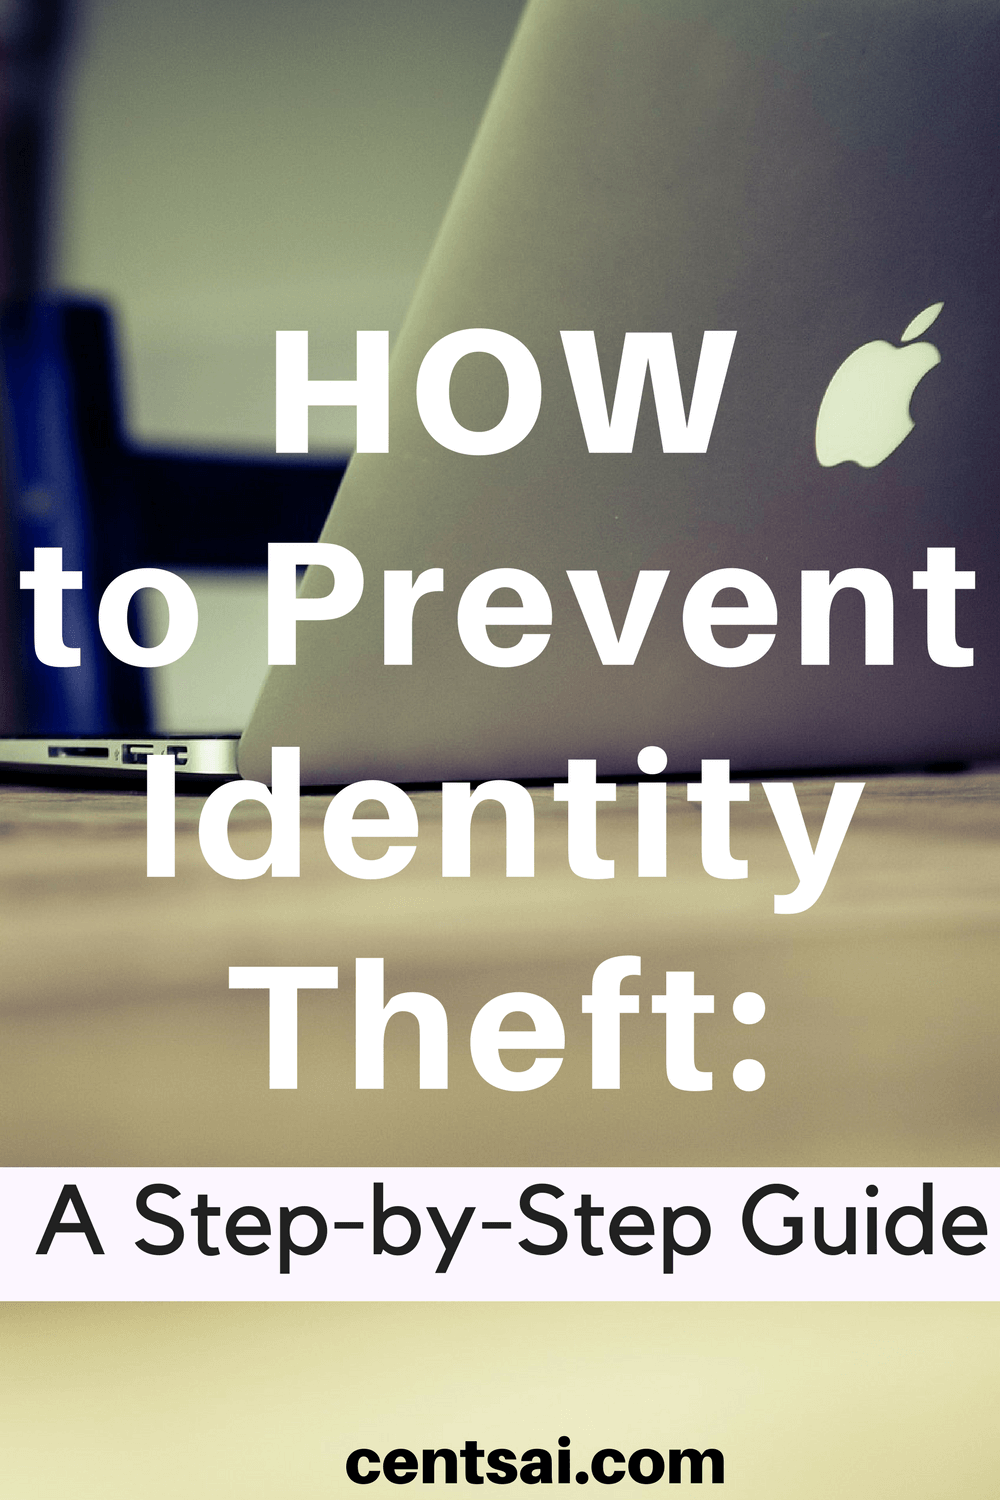 How to Prevent Identity Theft: A Step-by-Step Guide. Identity fraud protection is vital to your financial health. Here's how to protect yourself from identity theft. #identitytheft #personalfinance #tips